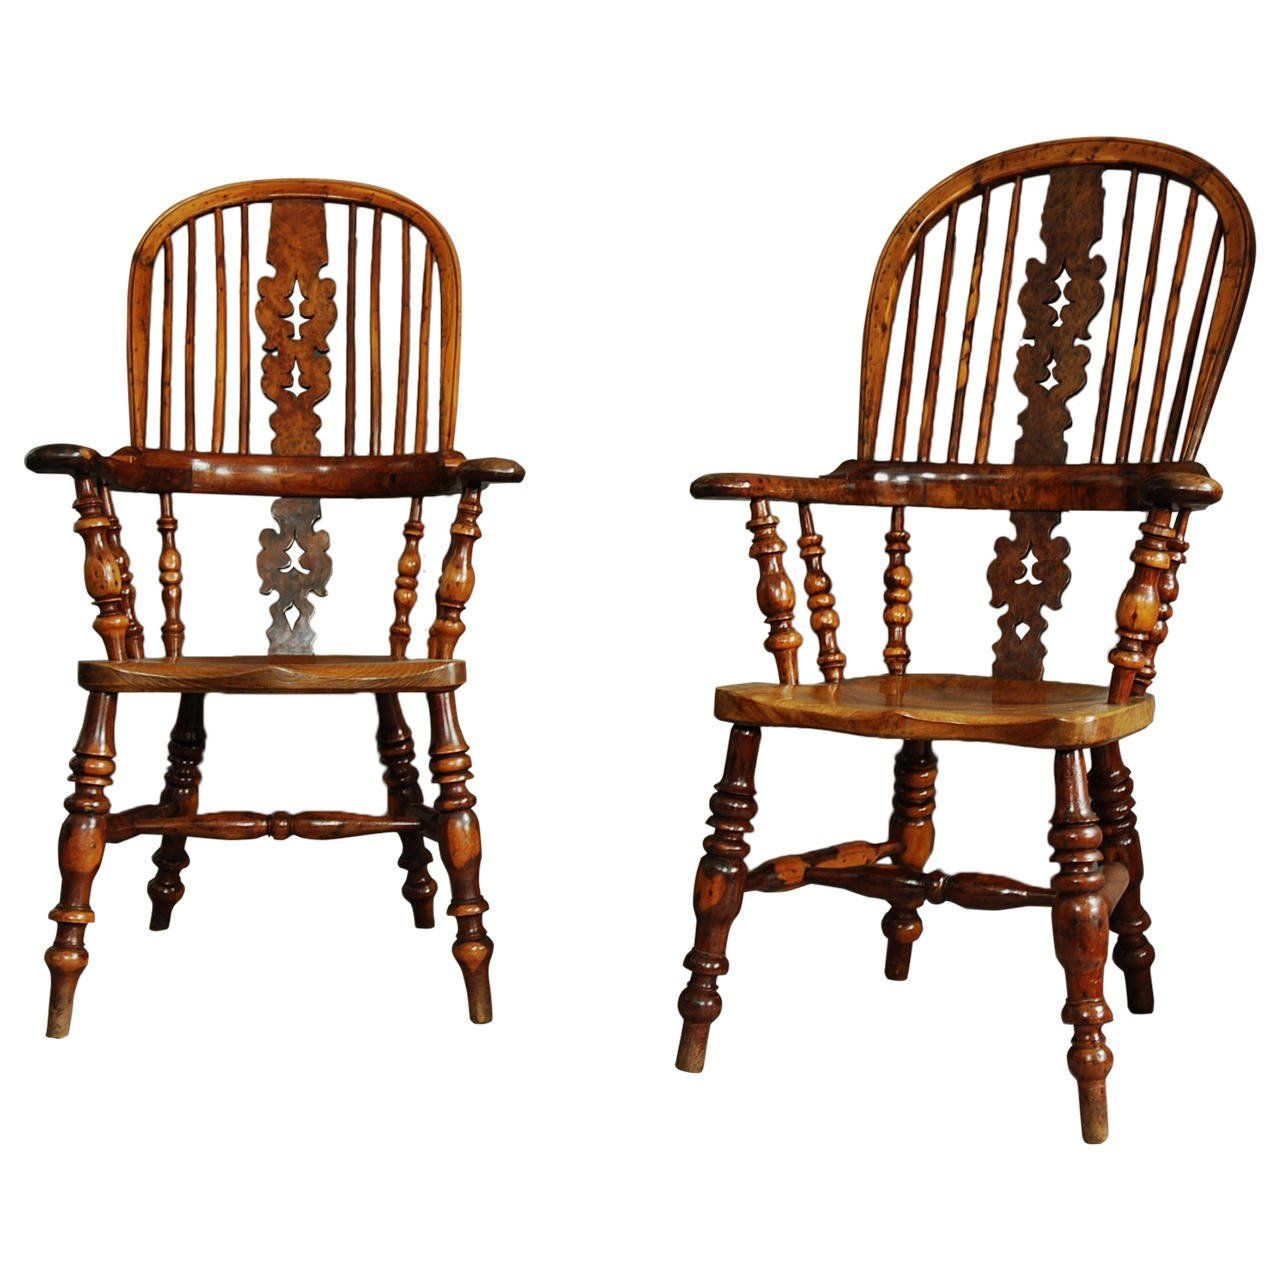 High back antique chairs - Pair Of Broad Arm Burr Yew Wood High Back Windsor Chairs See More